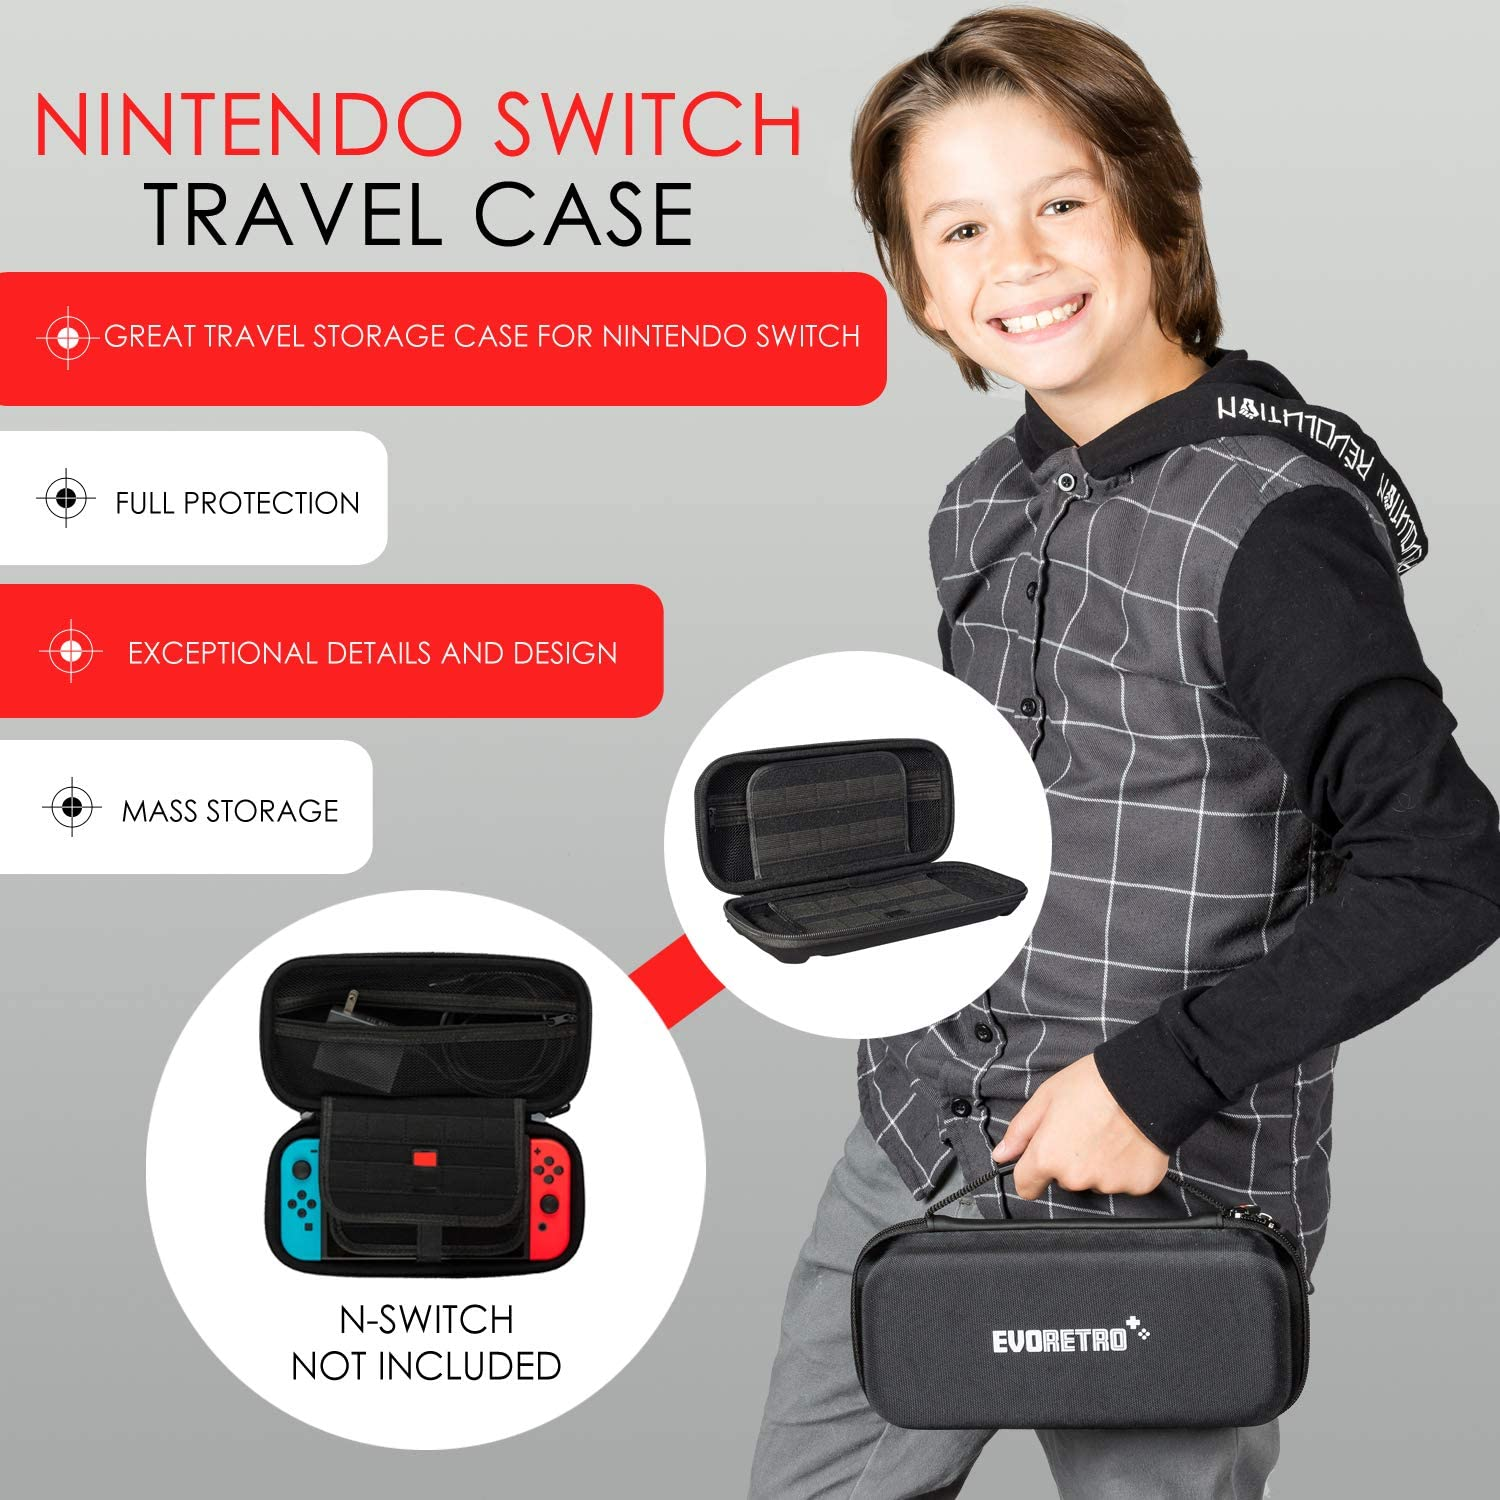 Ultimate Accessories Bundle compatible for Nintendo Switch - 21 in 1 Essential Kit including (Tempered Glass Screen Protector, Travel Carrying Case, Joy Con Charging Dock Station, Grip, and more): Electronics